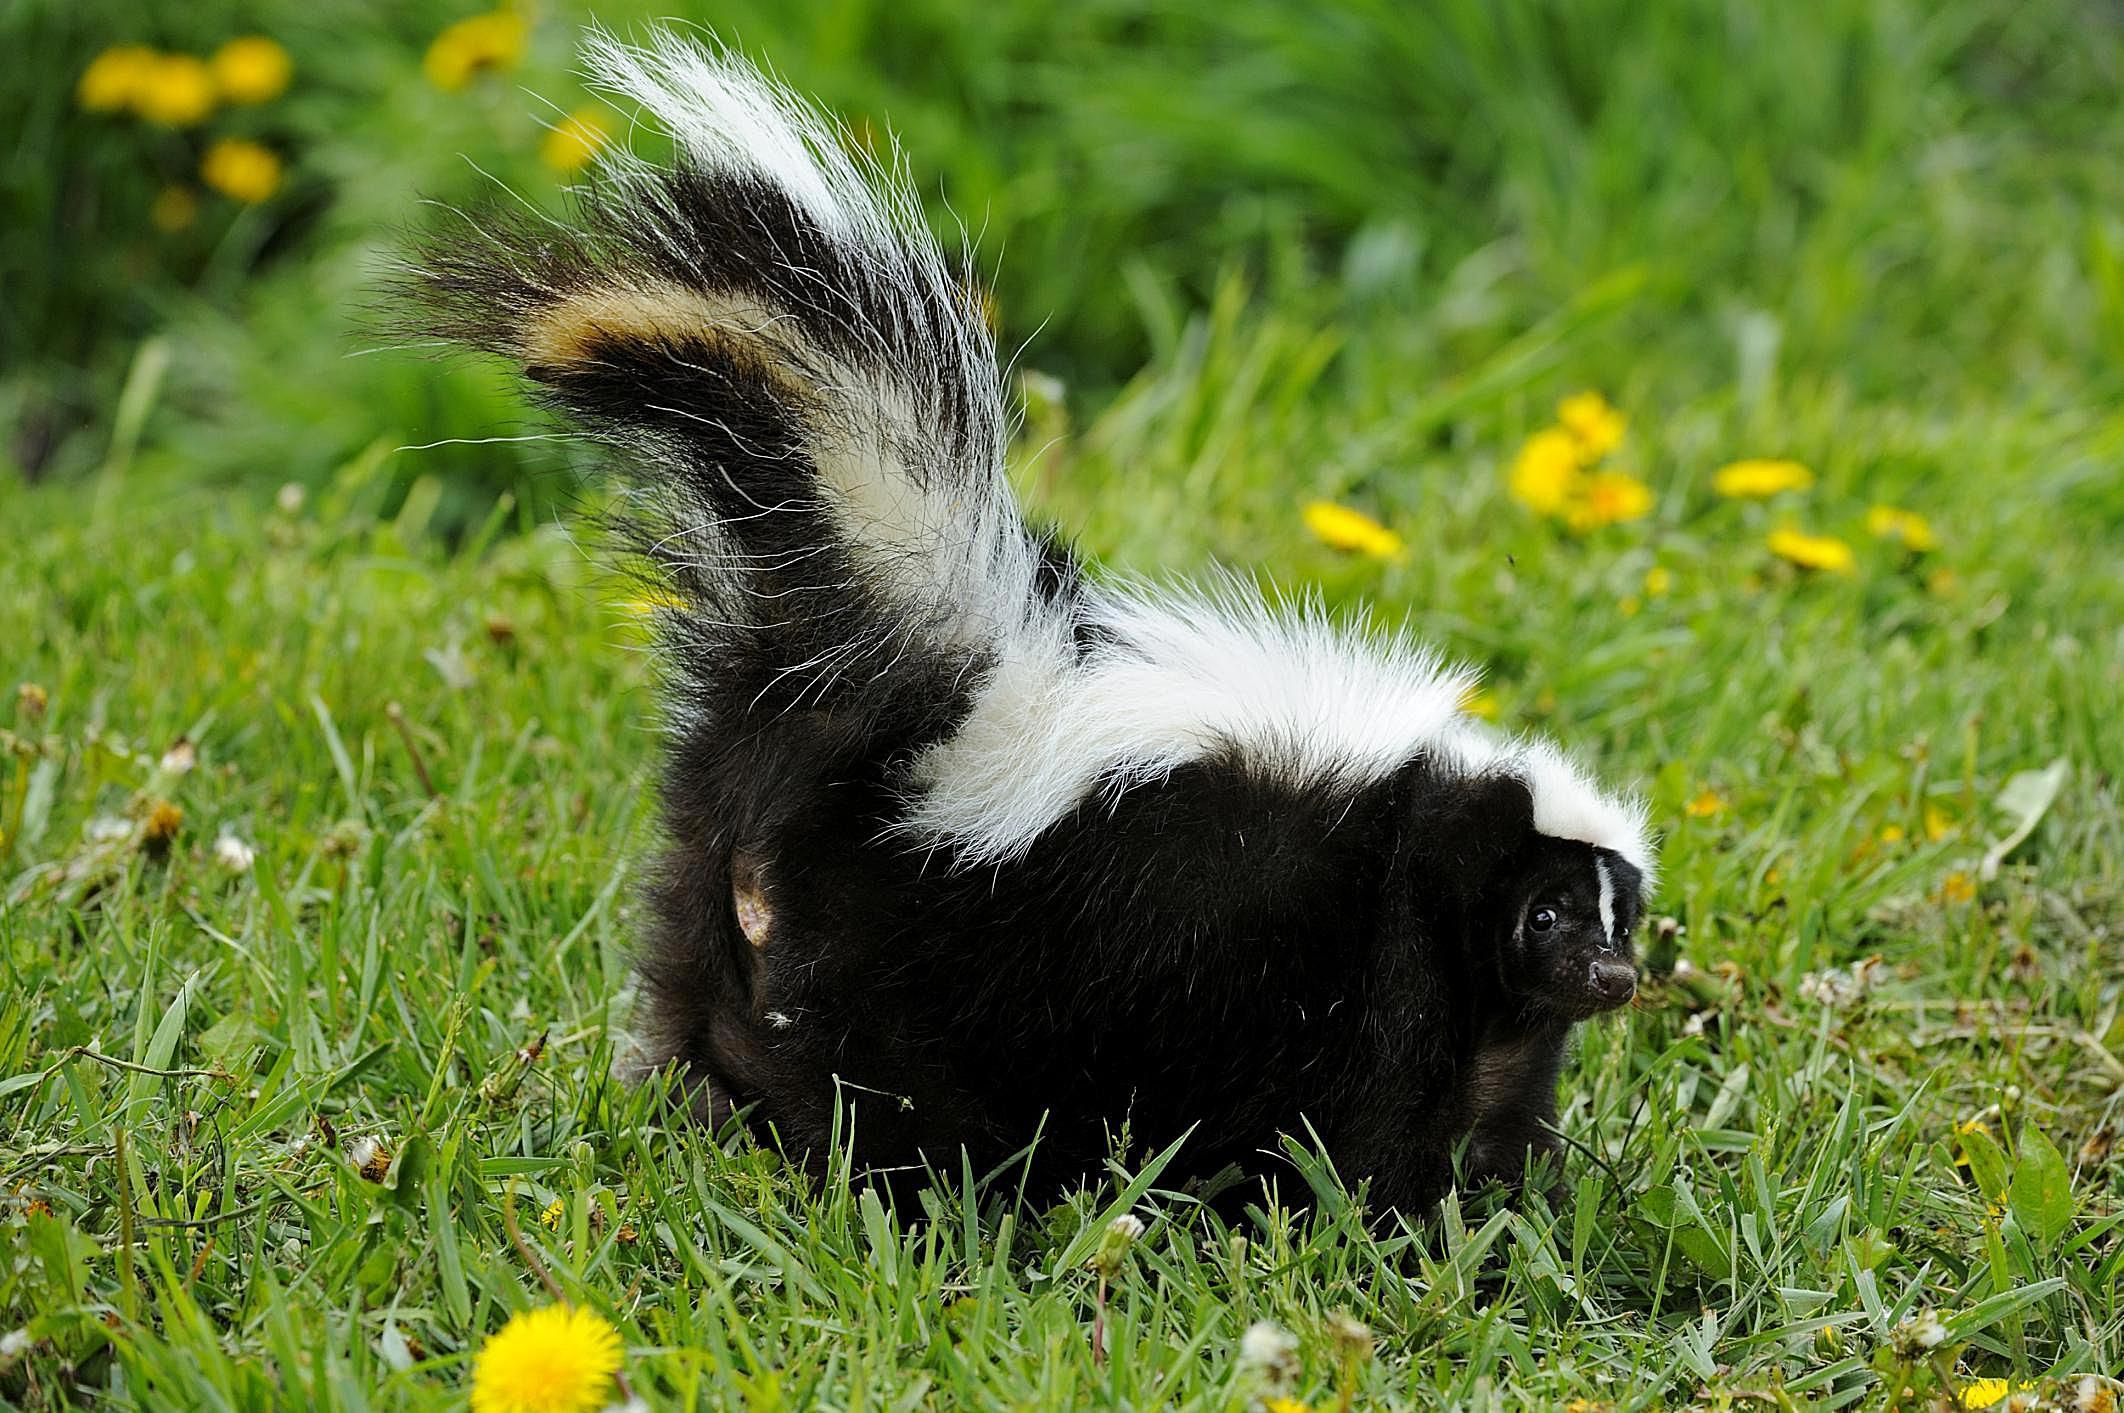 Rousing Skunk Skunk Useful Information S Can Skunks Climb Trees Can Skunks Climb Ken Wire houzz 01 Can Skunks Climb